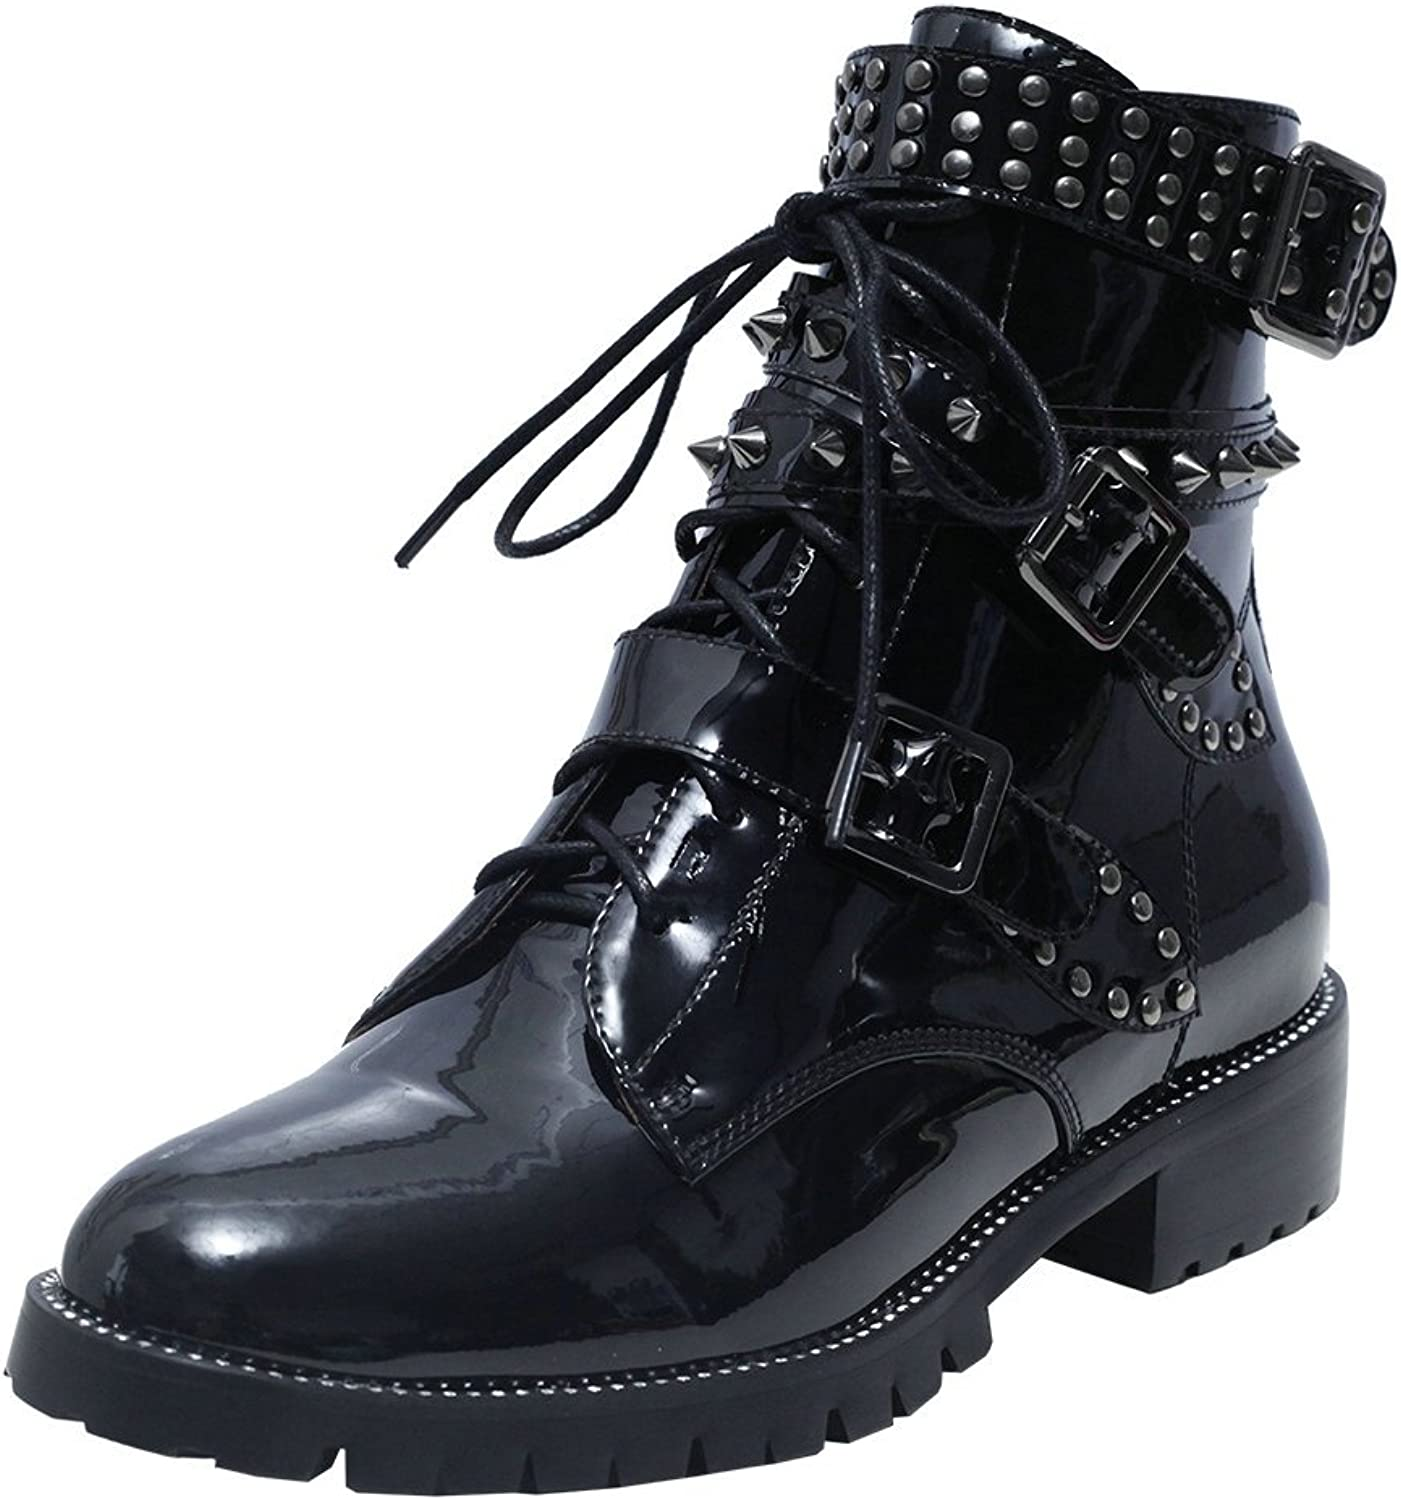 AnMengXinLing Fashion Ankle Boots Women Studded Buckle Low Block Heel Rubber Sole Motorcycle Booties Patent Leather Round Toe